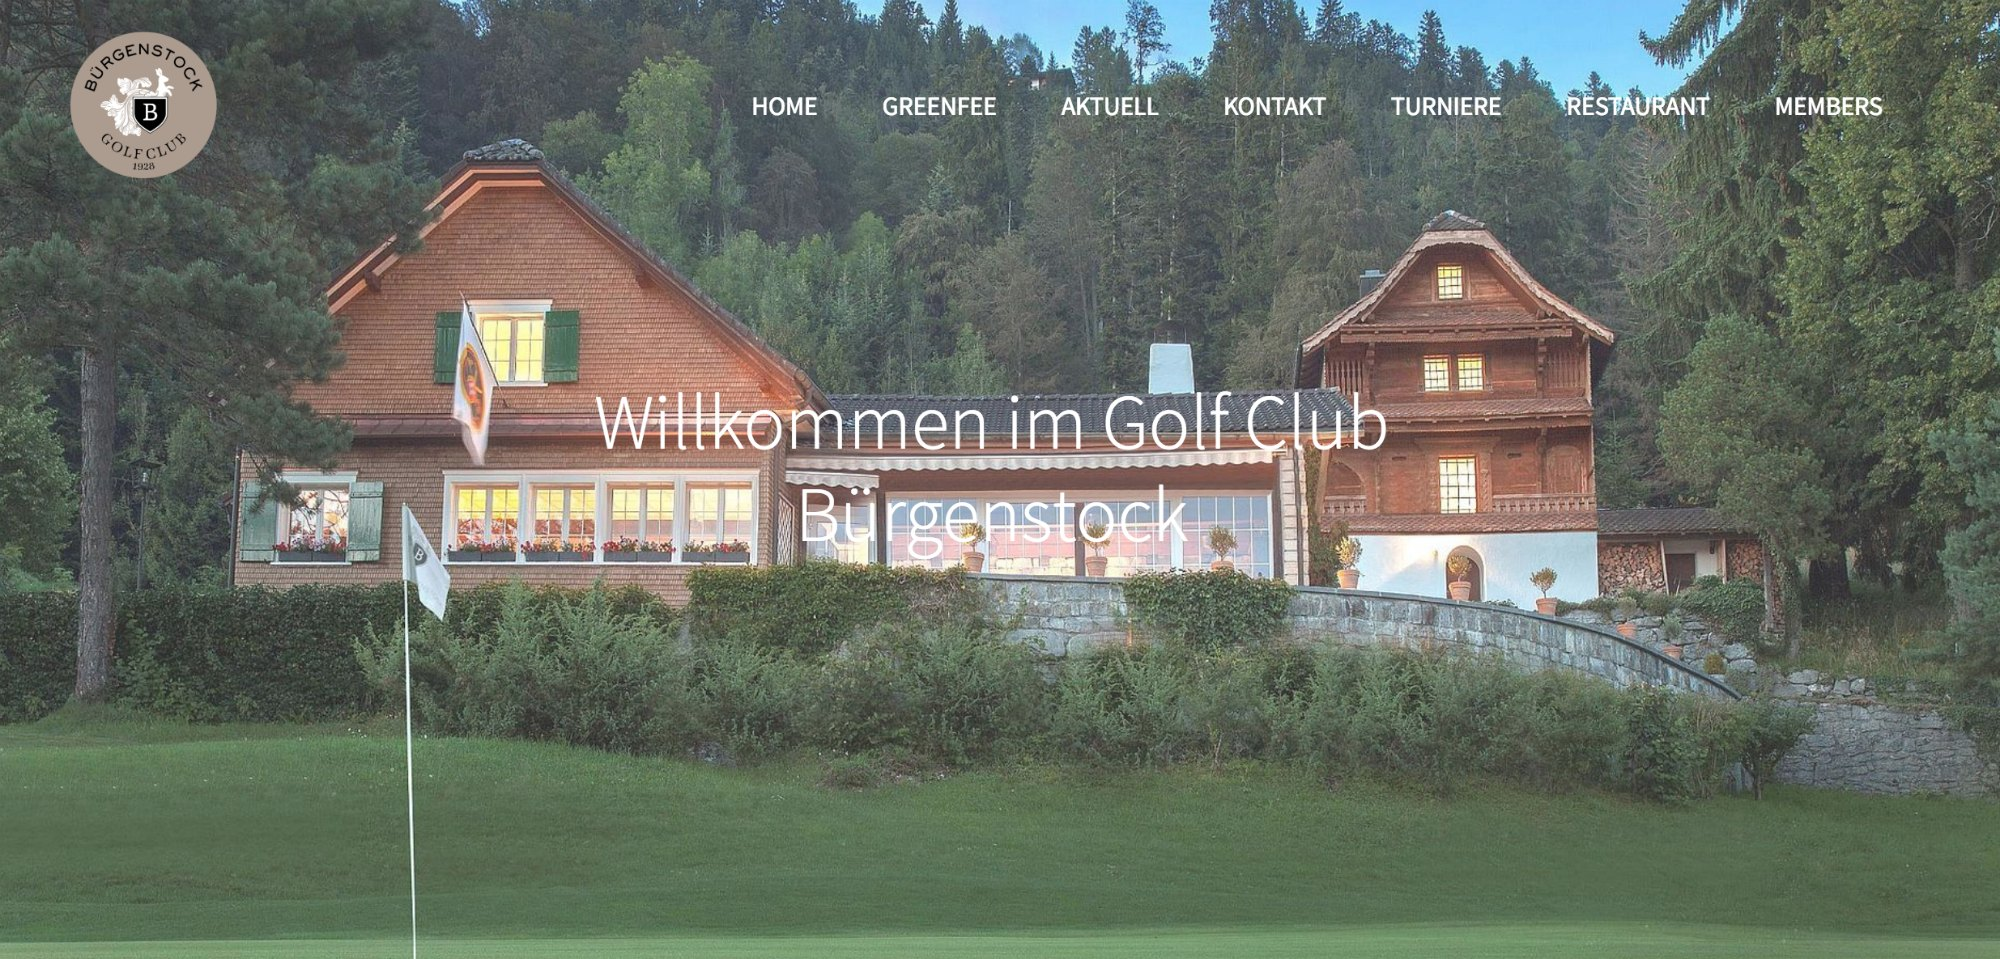 This is how the Golf Club looks now, but this photo is deceiving. It isn't nearly as large as it looks here. Why didn't I take my own photo? Great question. I'm a complicated little bunny. (Photo credit: Burgenstock Resort website)